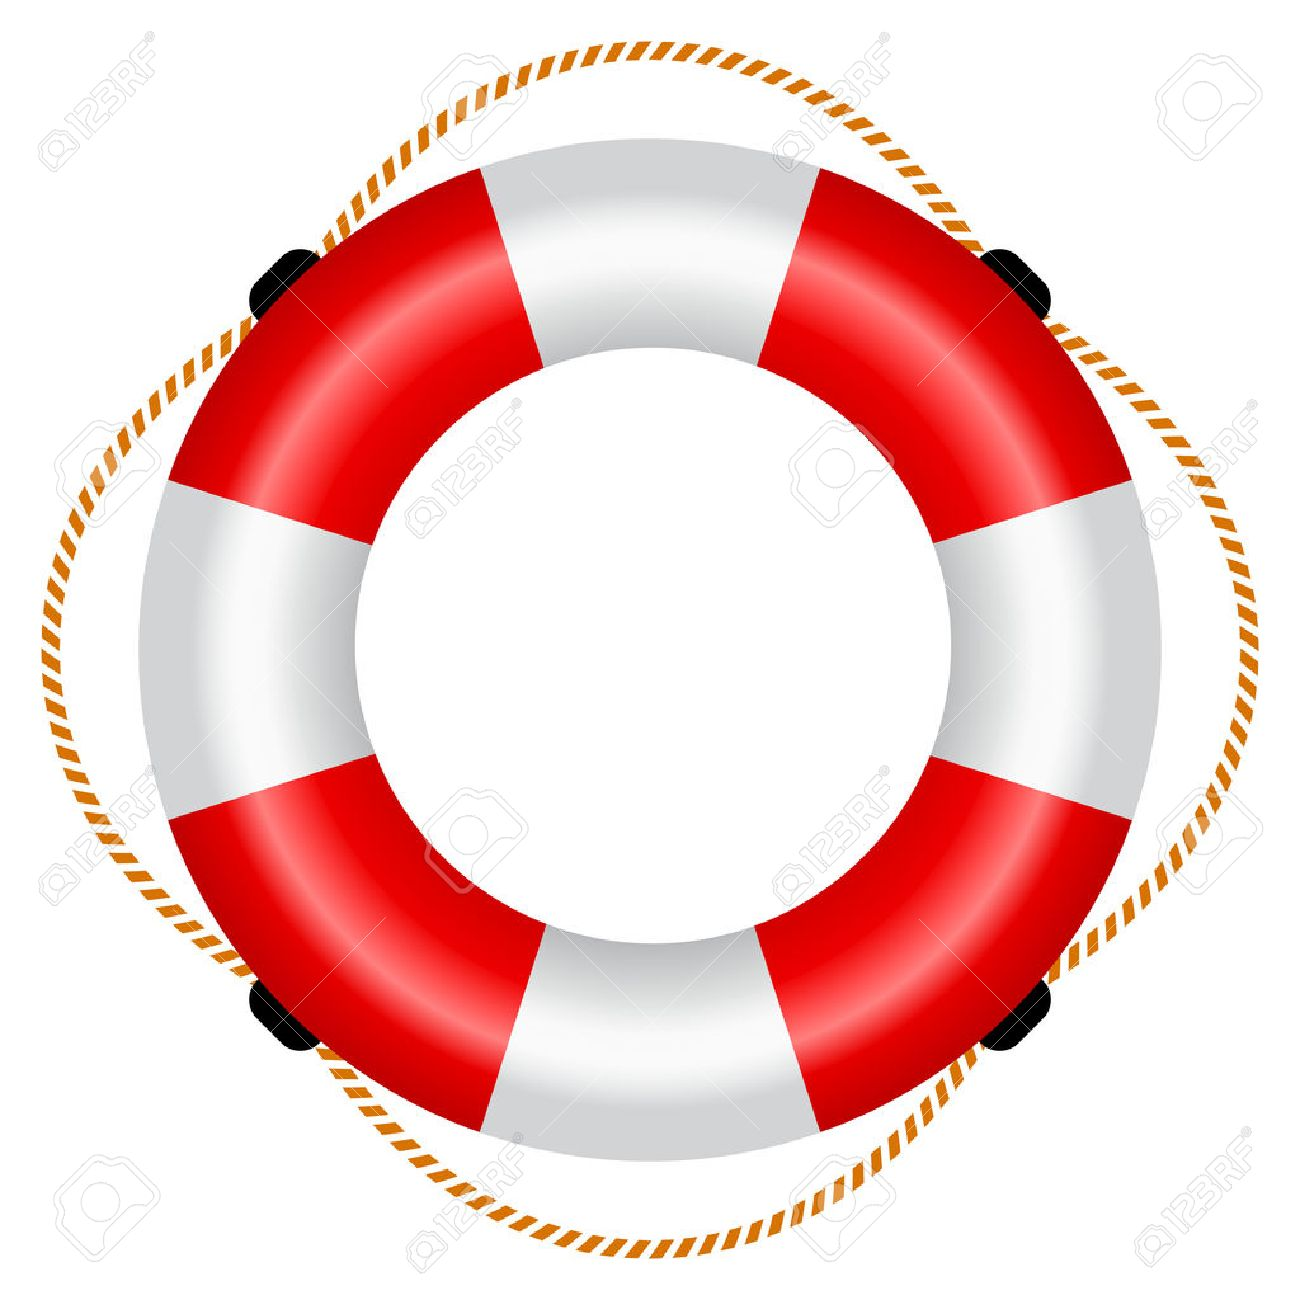 4 164 life preserver stock vector illustration and royalty free life rh 123rf com Life Preserver Icon life preserver clipart black and white